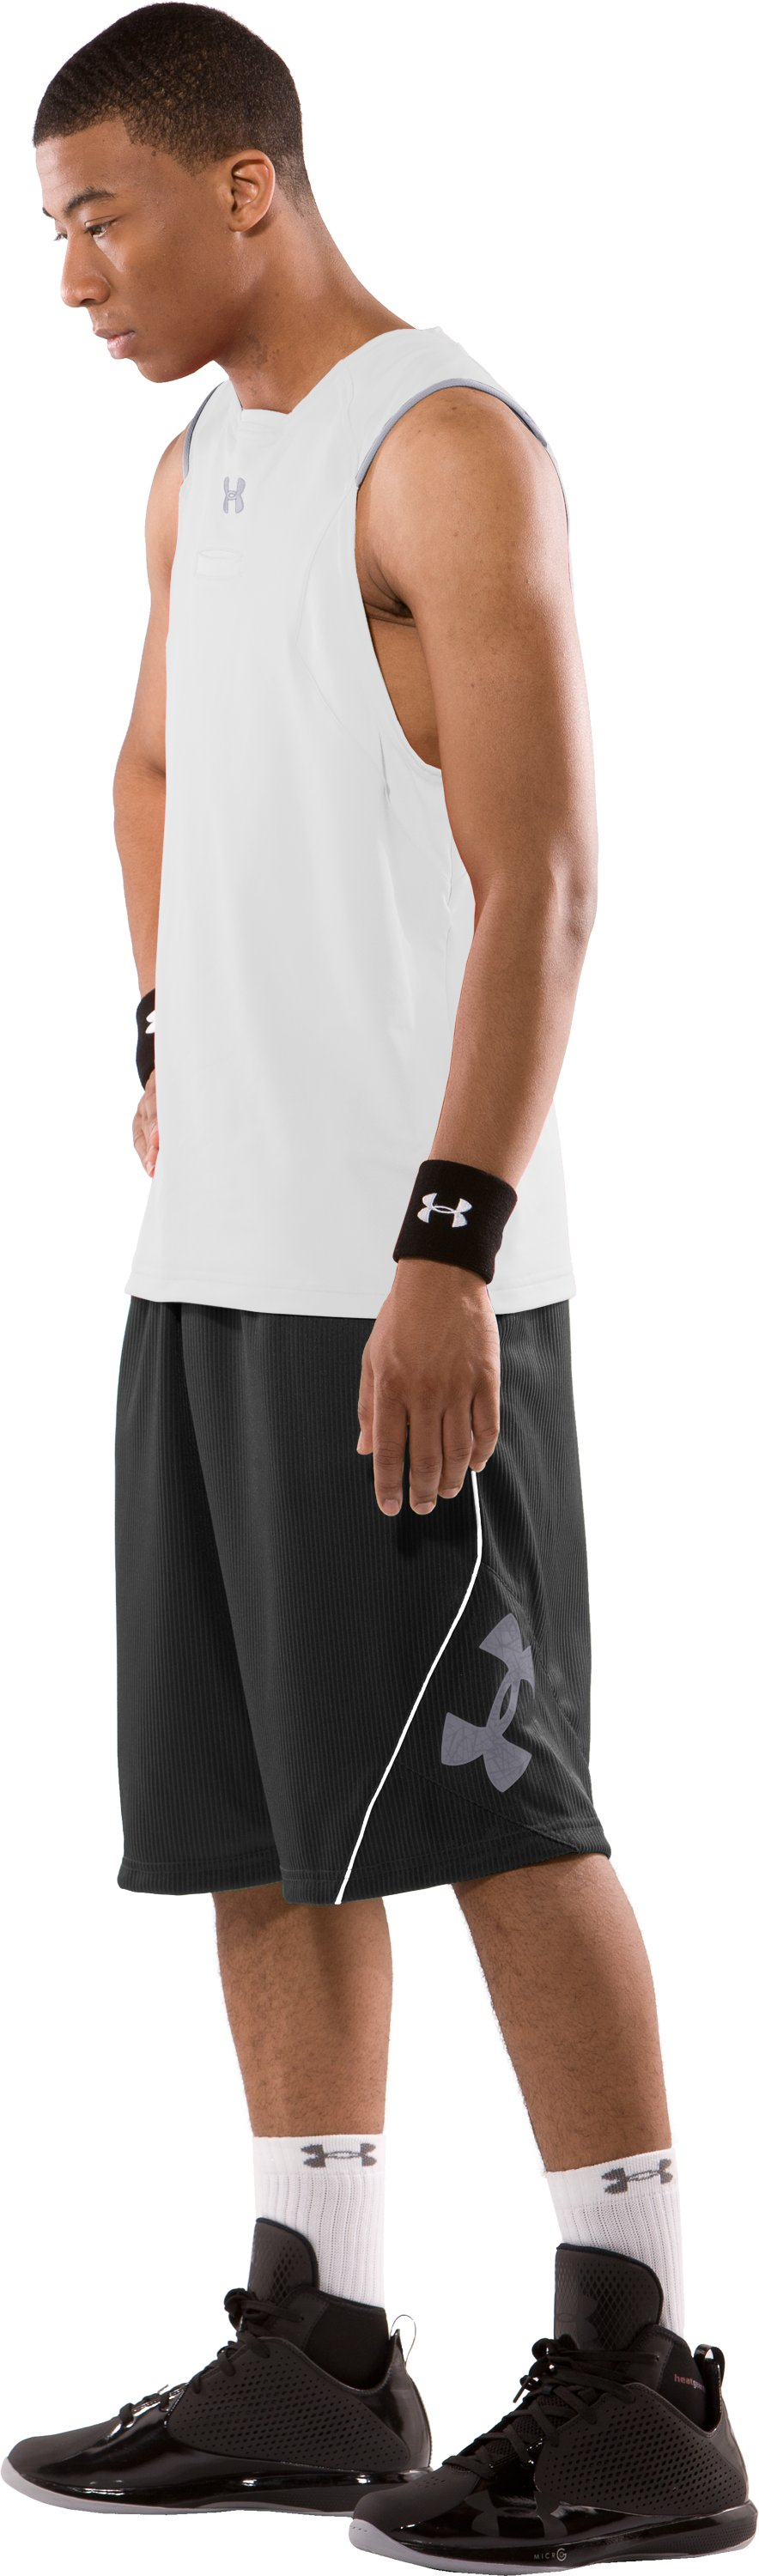 "Men's 12"" Lightspeed Basketball Shorts, Black"